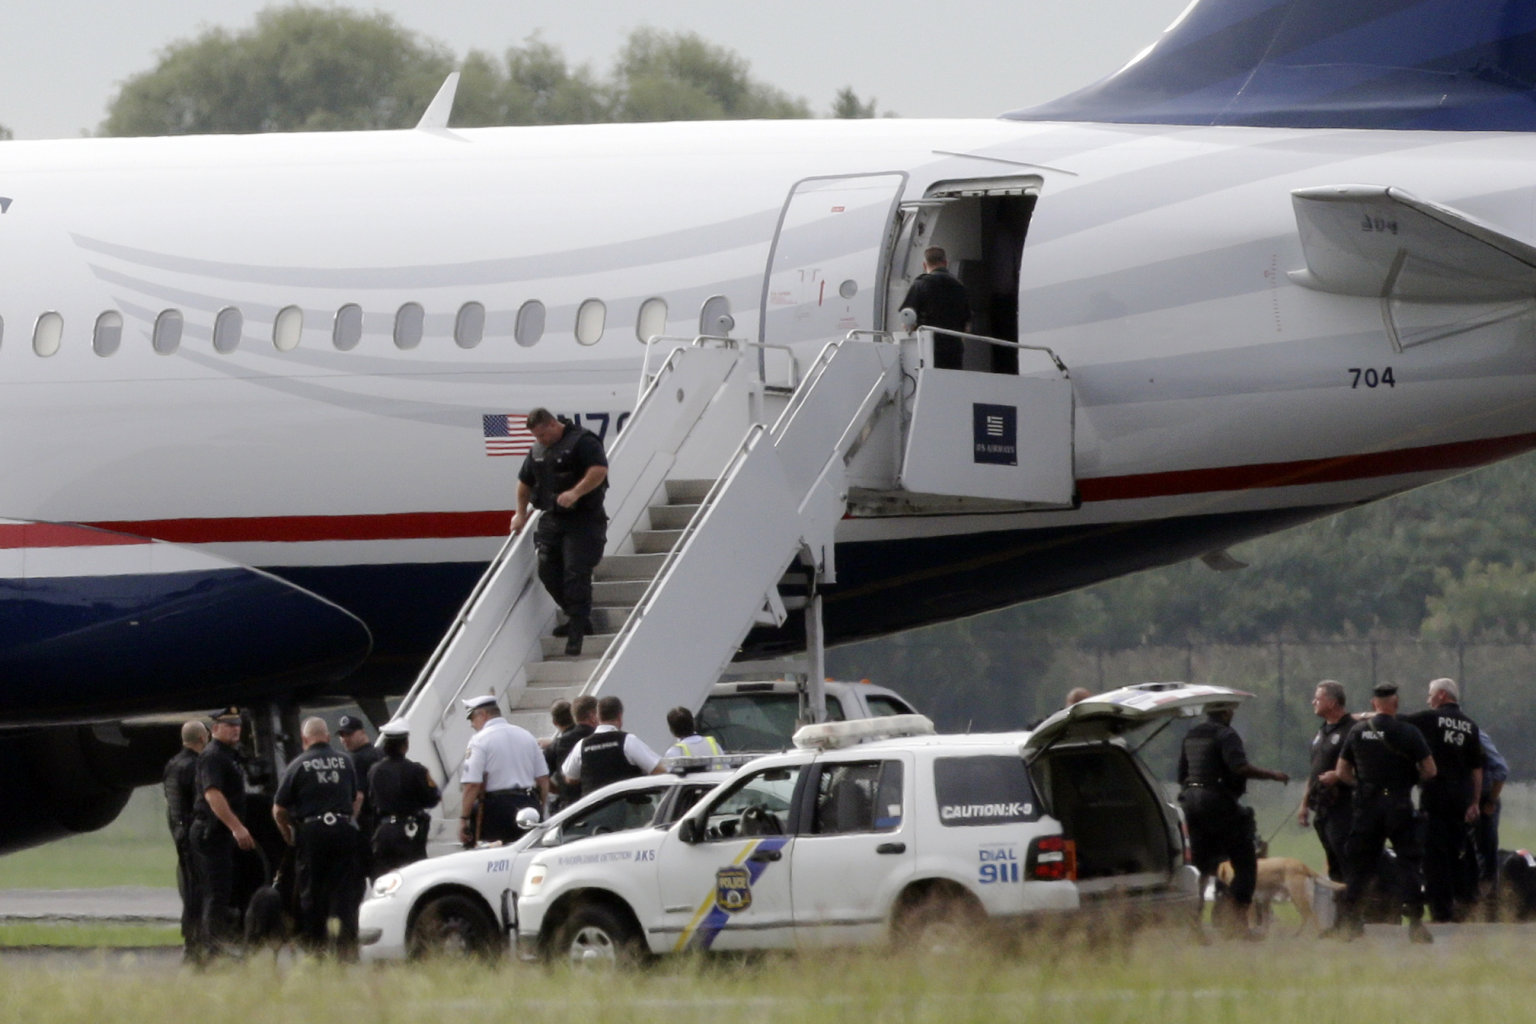 Law enforcement officials work around a US Airways flight at Philadelphia International Airport, after the plane returned to the airport, Thursday, Sept. 6, 2012, in Philadelphia. A security scare that prompted authorities to recall an airborne U.S. flight was the result of an apparent hoax, police said Thursday.